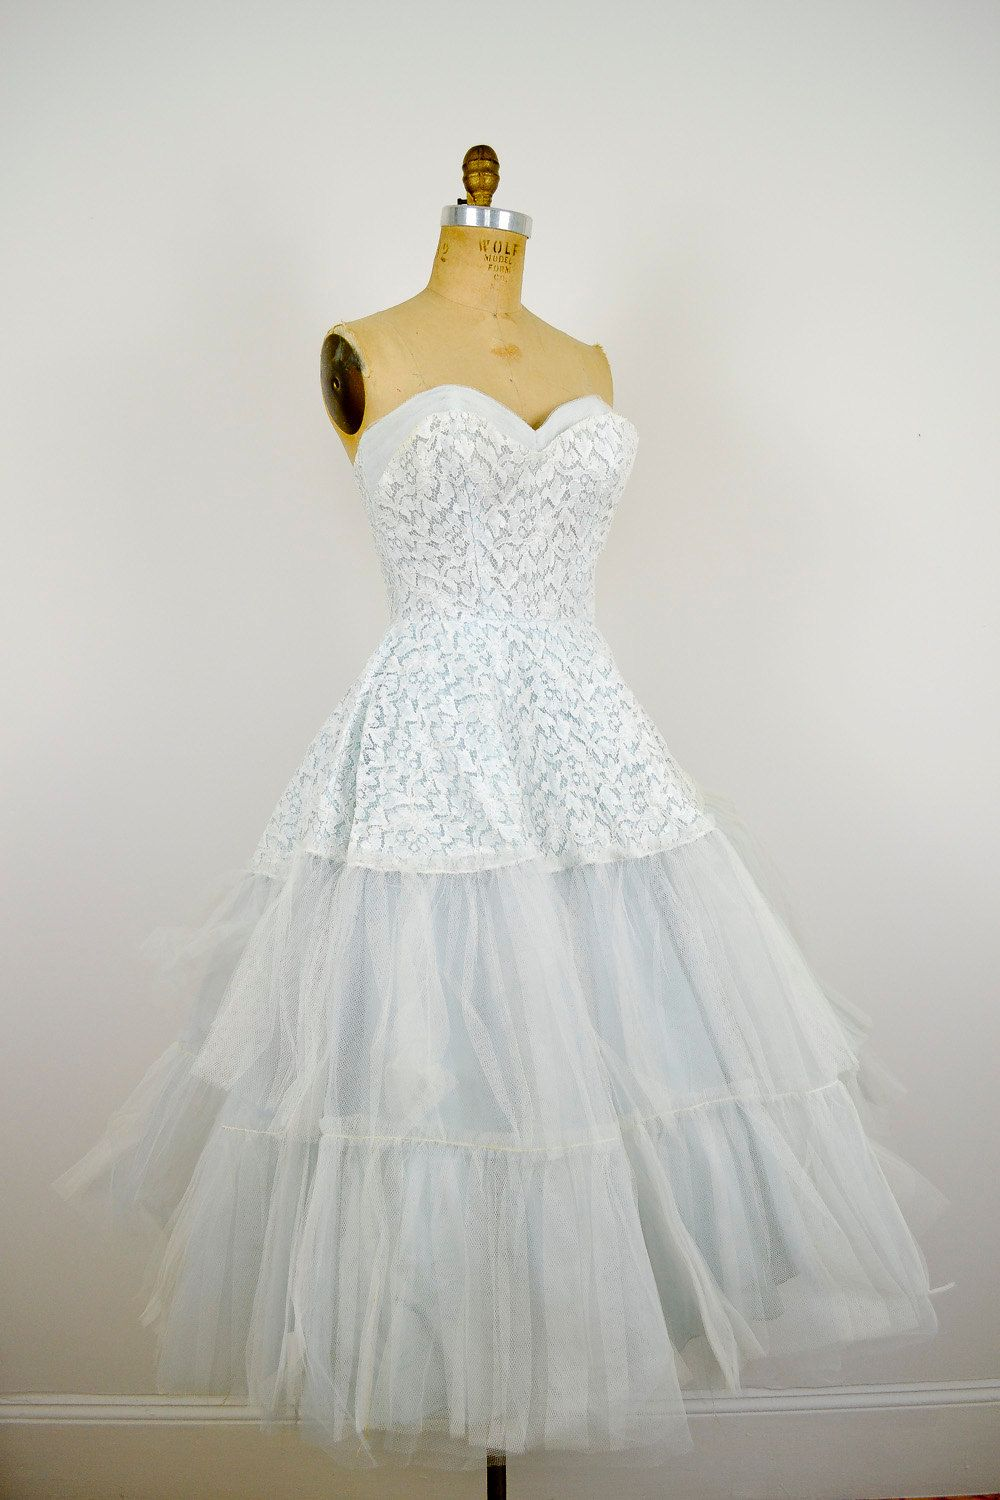 1950s style wedding dresses  pale blue s lace wedding dress   OFFBEAT Wedding GOWNS